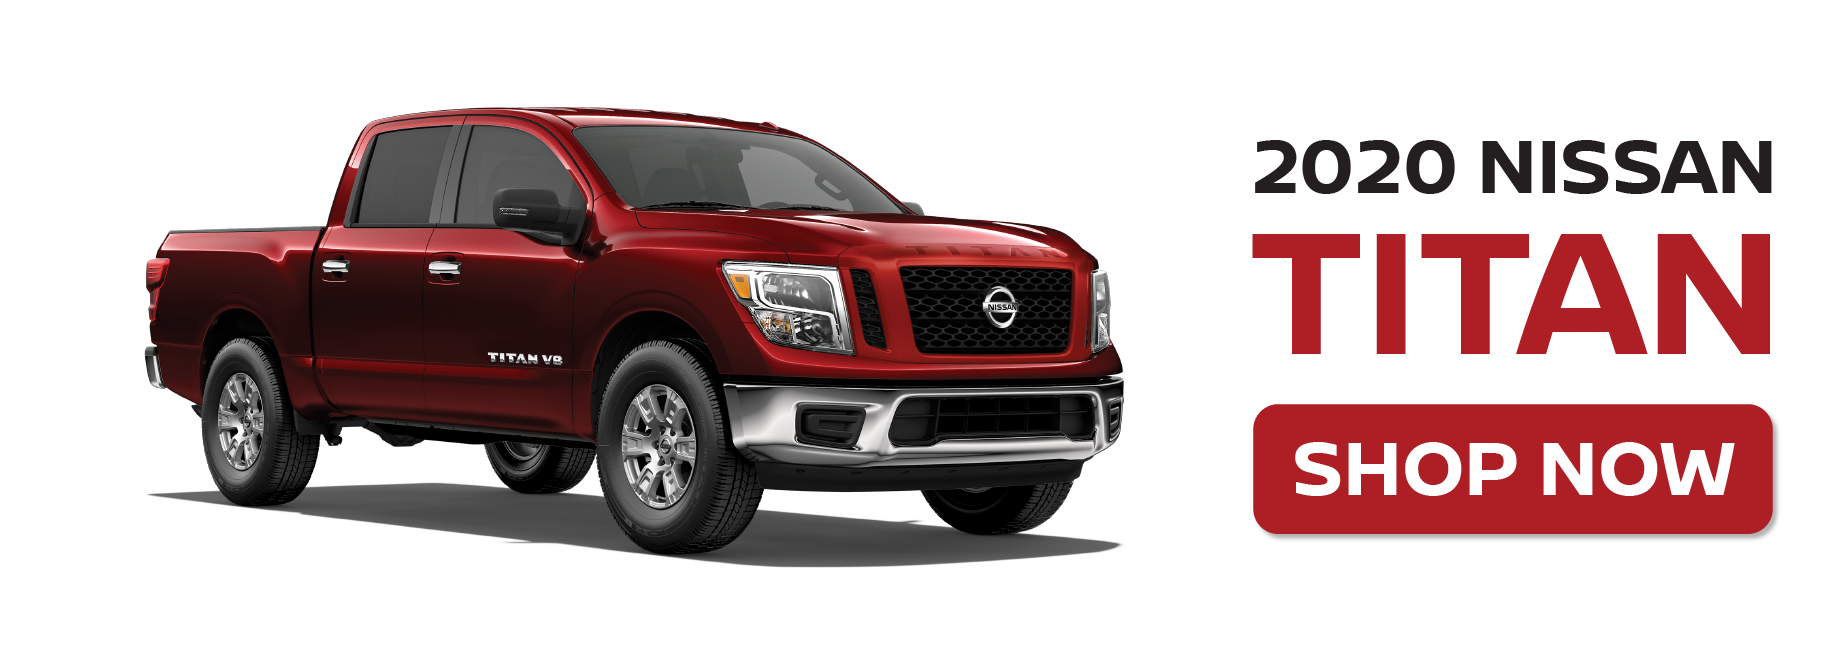 Nissan Titan For Sale In Katy, TX